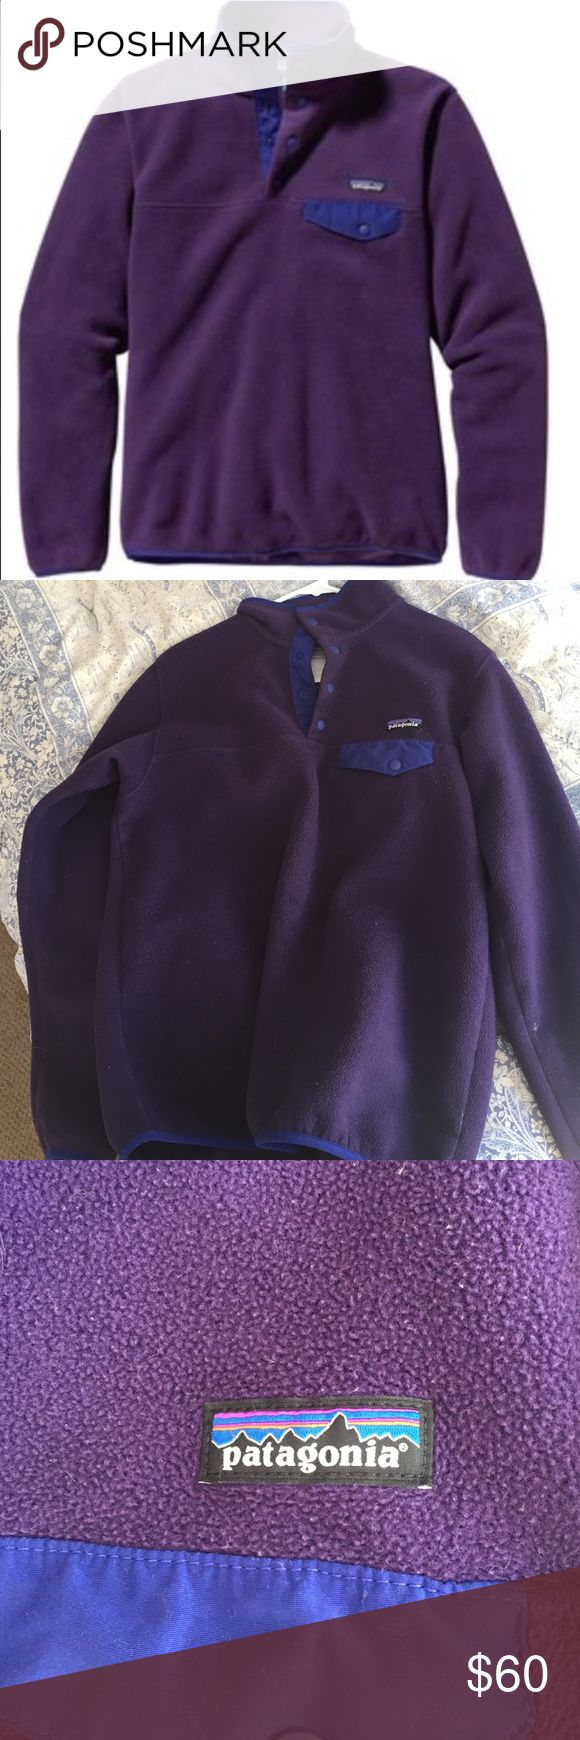 Patagonia synchilla jacket super cute I just don't wear it. size medium and in great condition. Patagonia Tops Sweatshirts & Hoodies